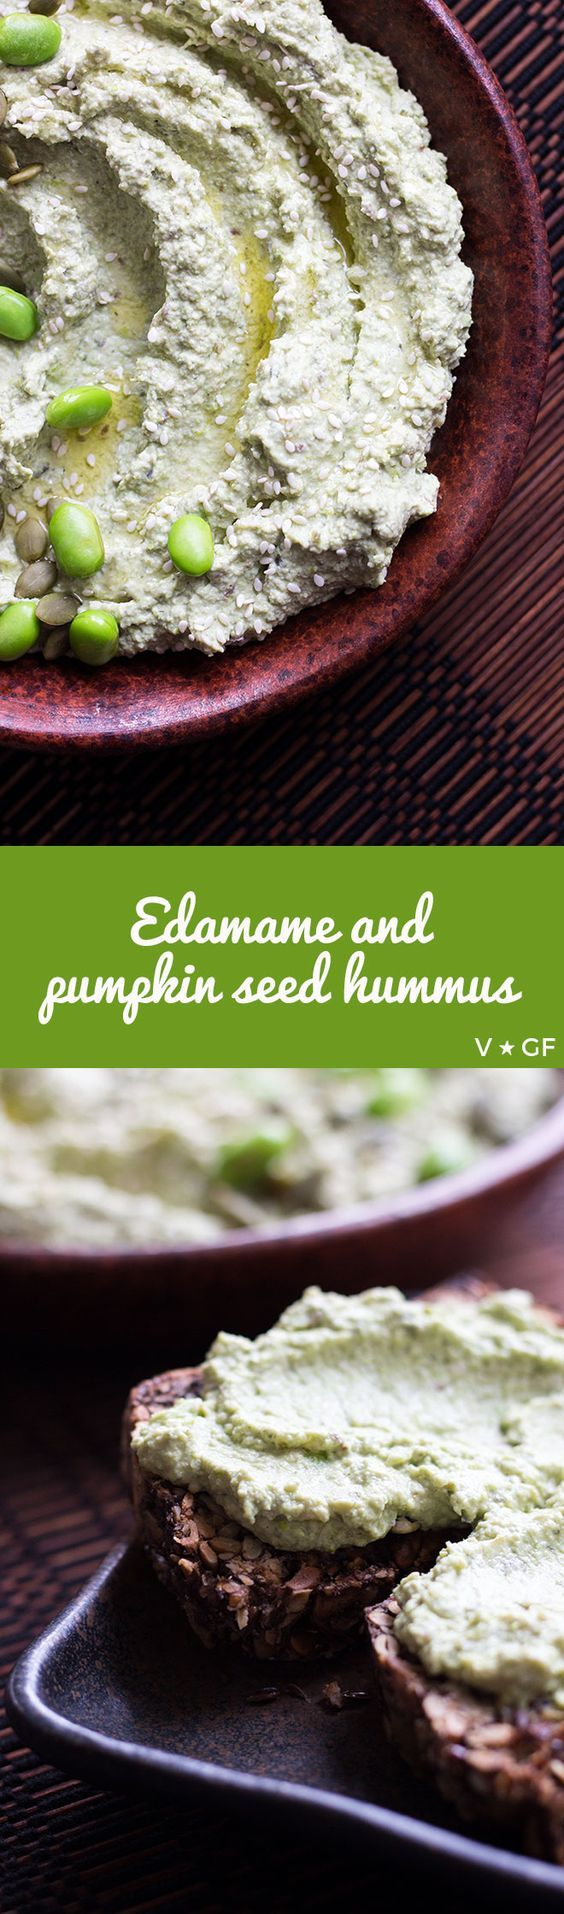 A non-traditional but satisfying and familiar tasting edamame hummus made with nutritious edamame beans and pumpkin seeds. via @quitegoodfood